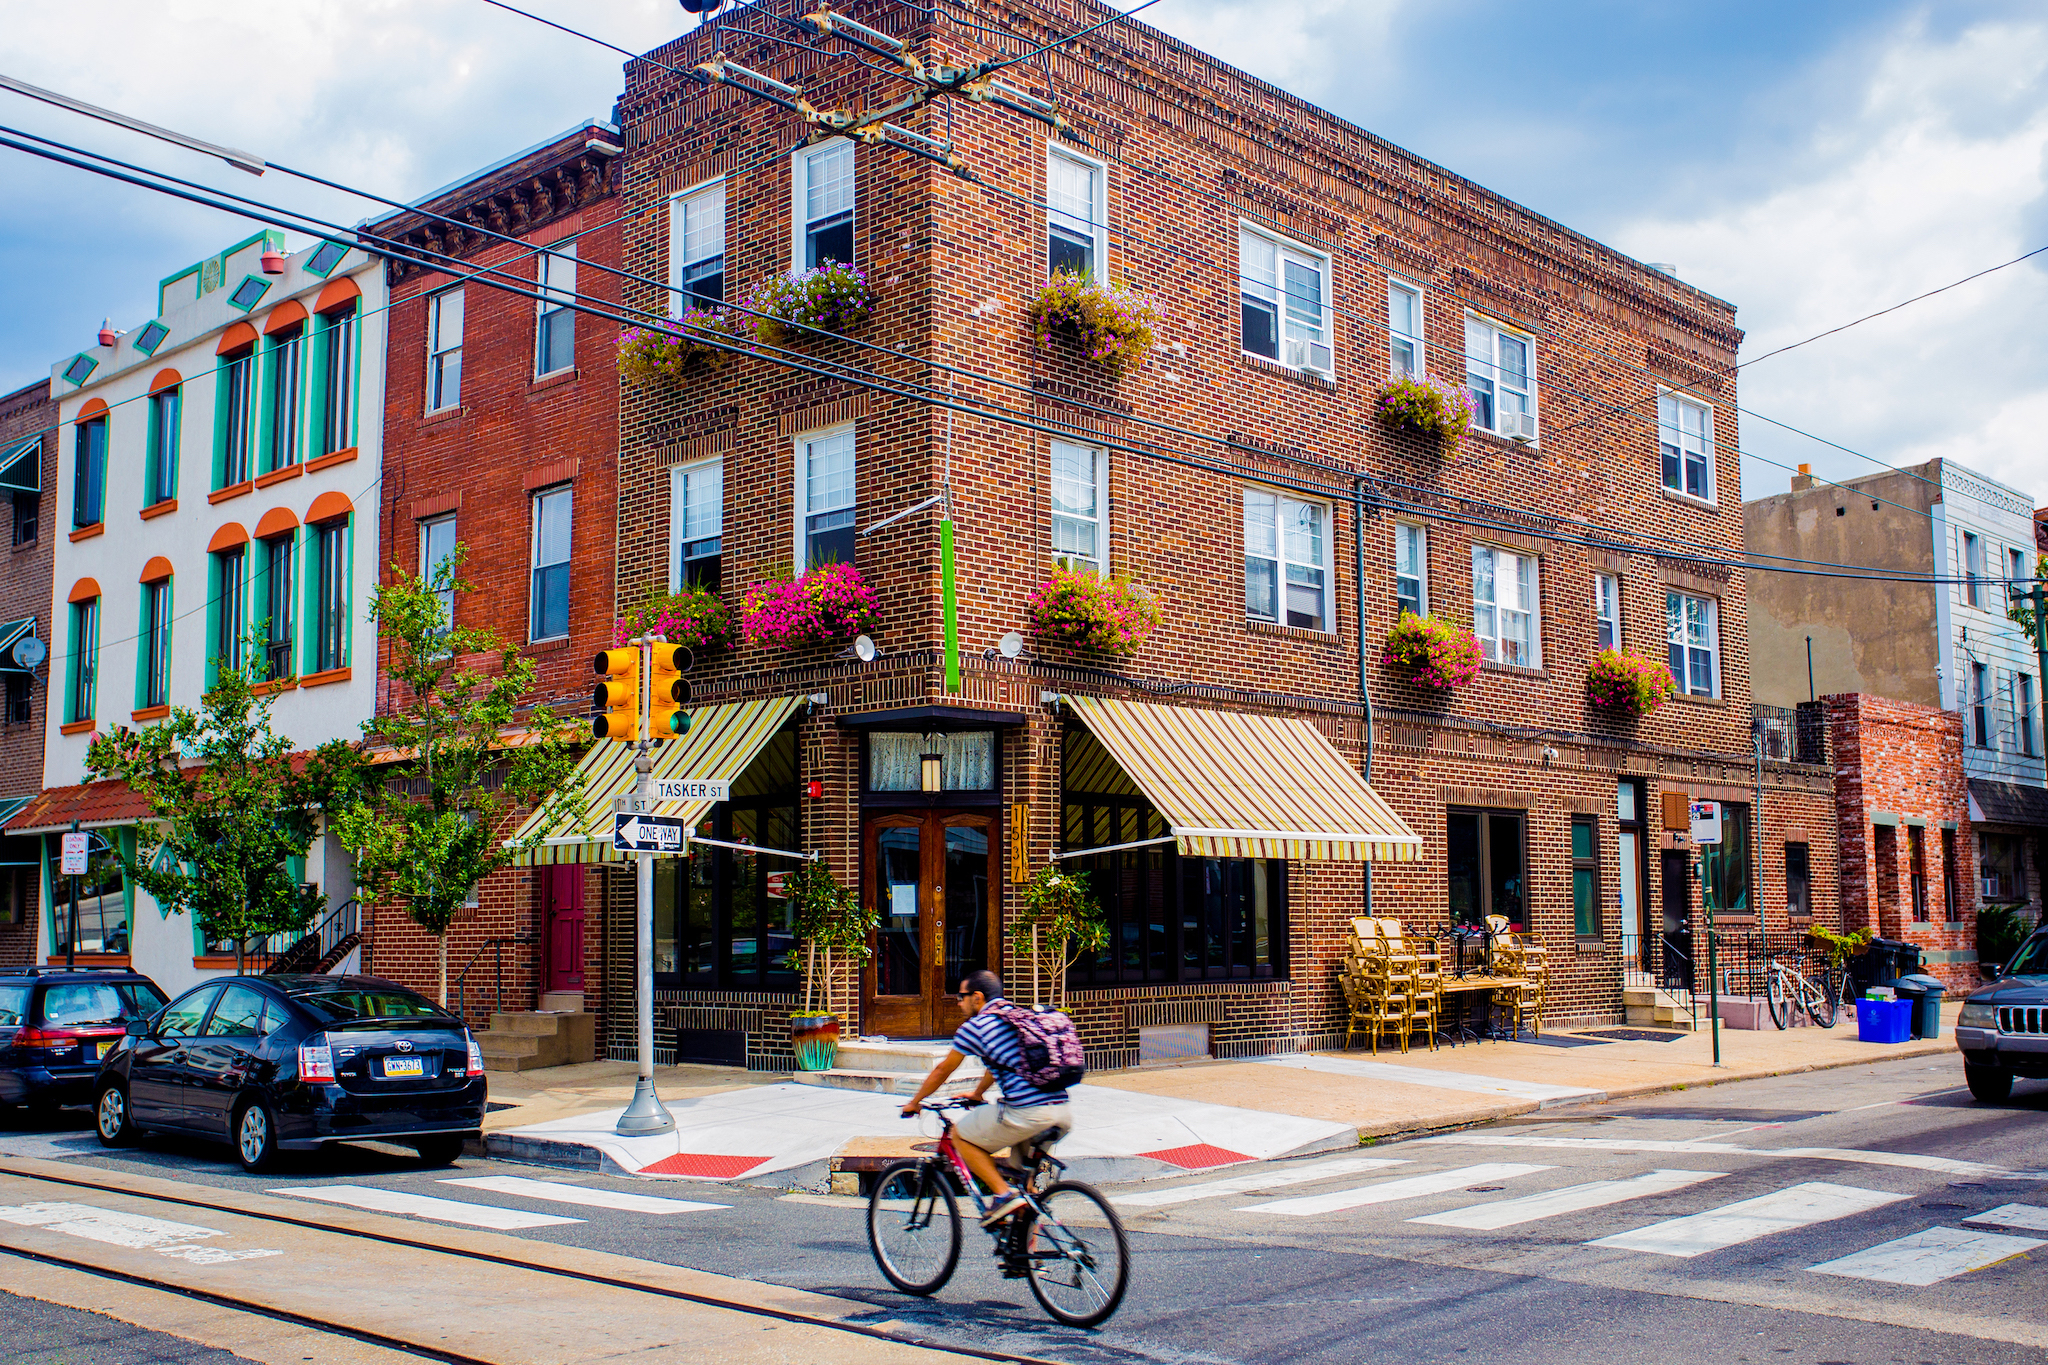 Looking for where to stay in Philadelphia? Try South Philly to explore the Italian Market and East Passyunk Avenue.